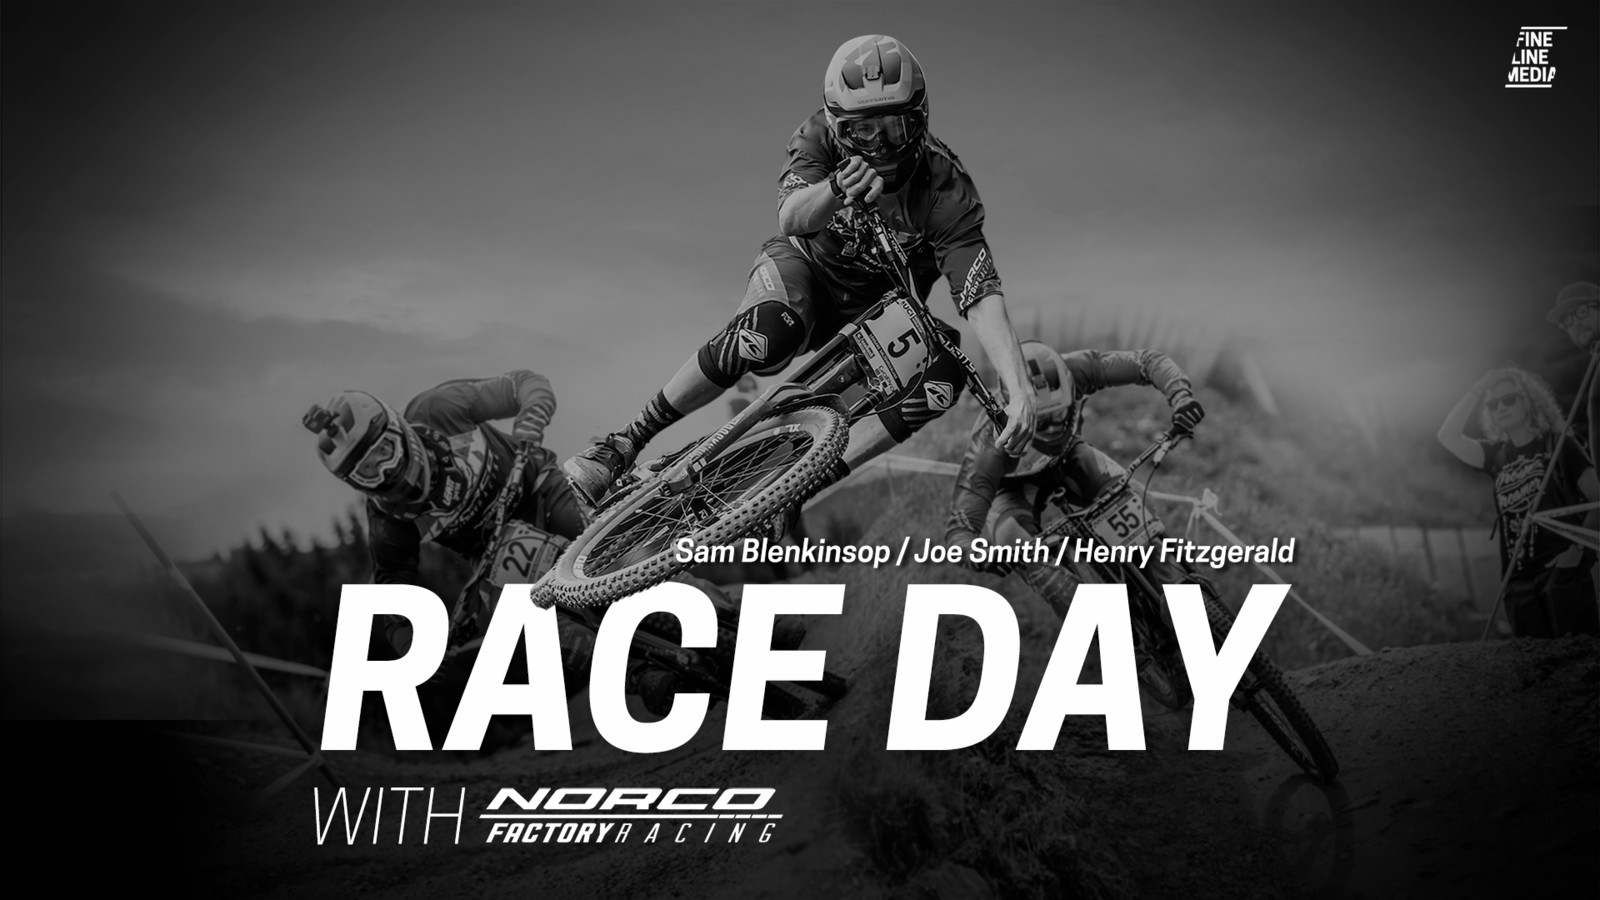 Race day with Sam Blenkinsop, Joe Smith and Henry Fitzgerald